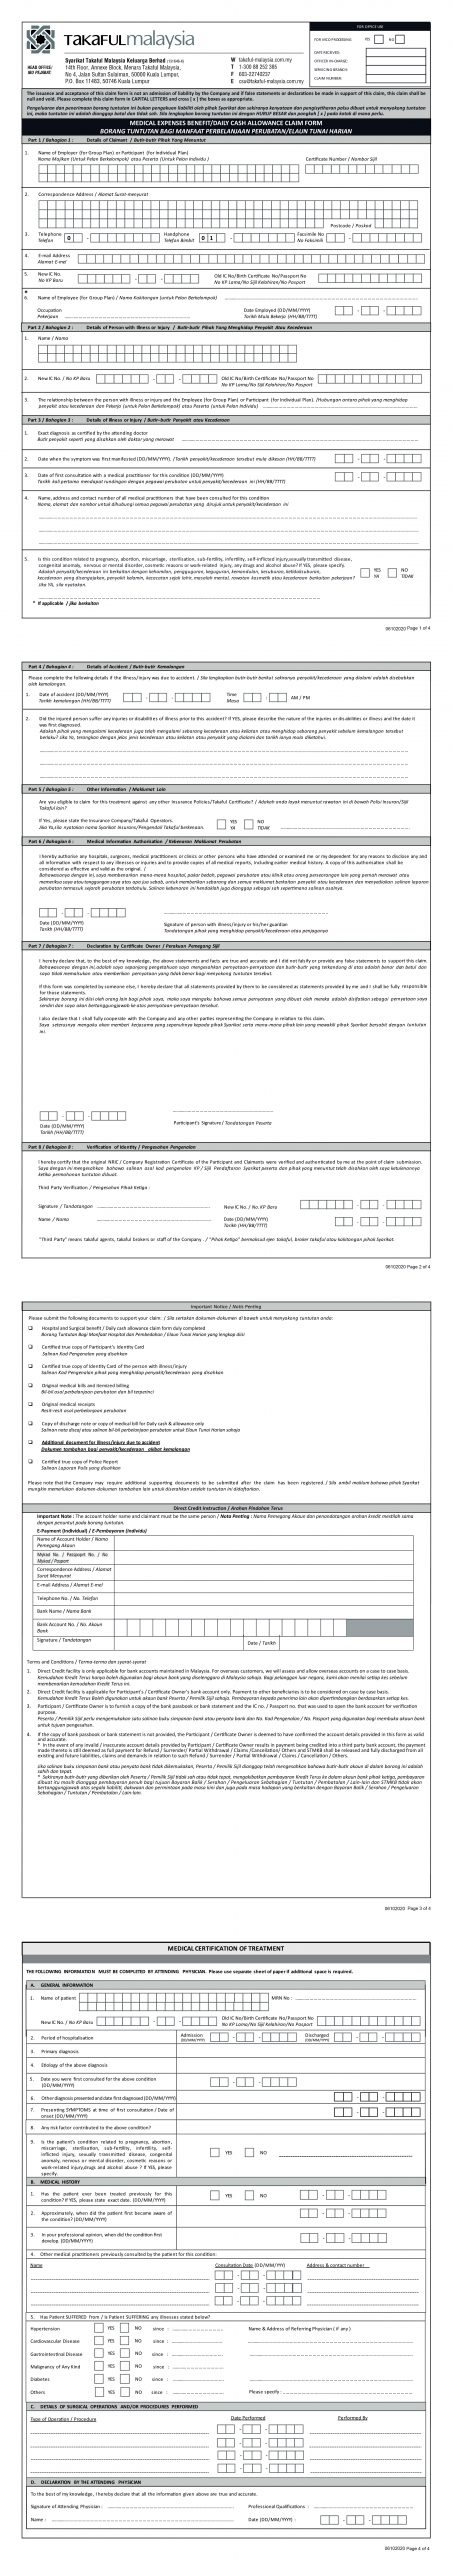 MPI Generali Personal Accident Claim Form